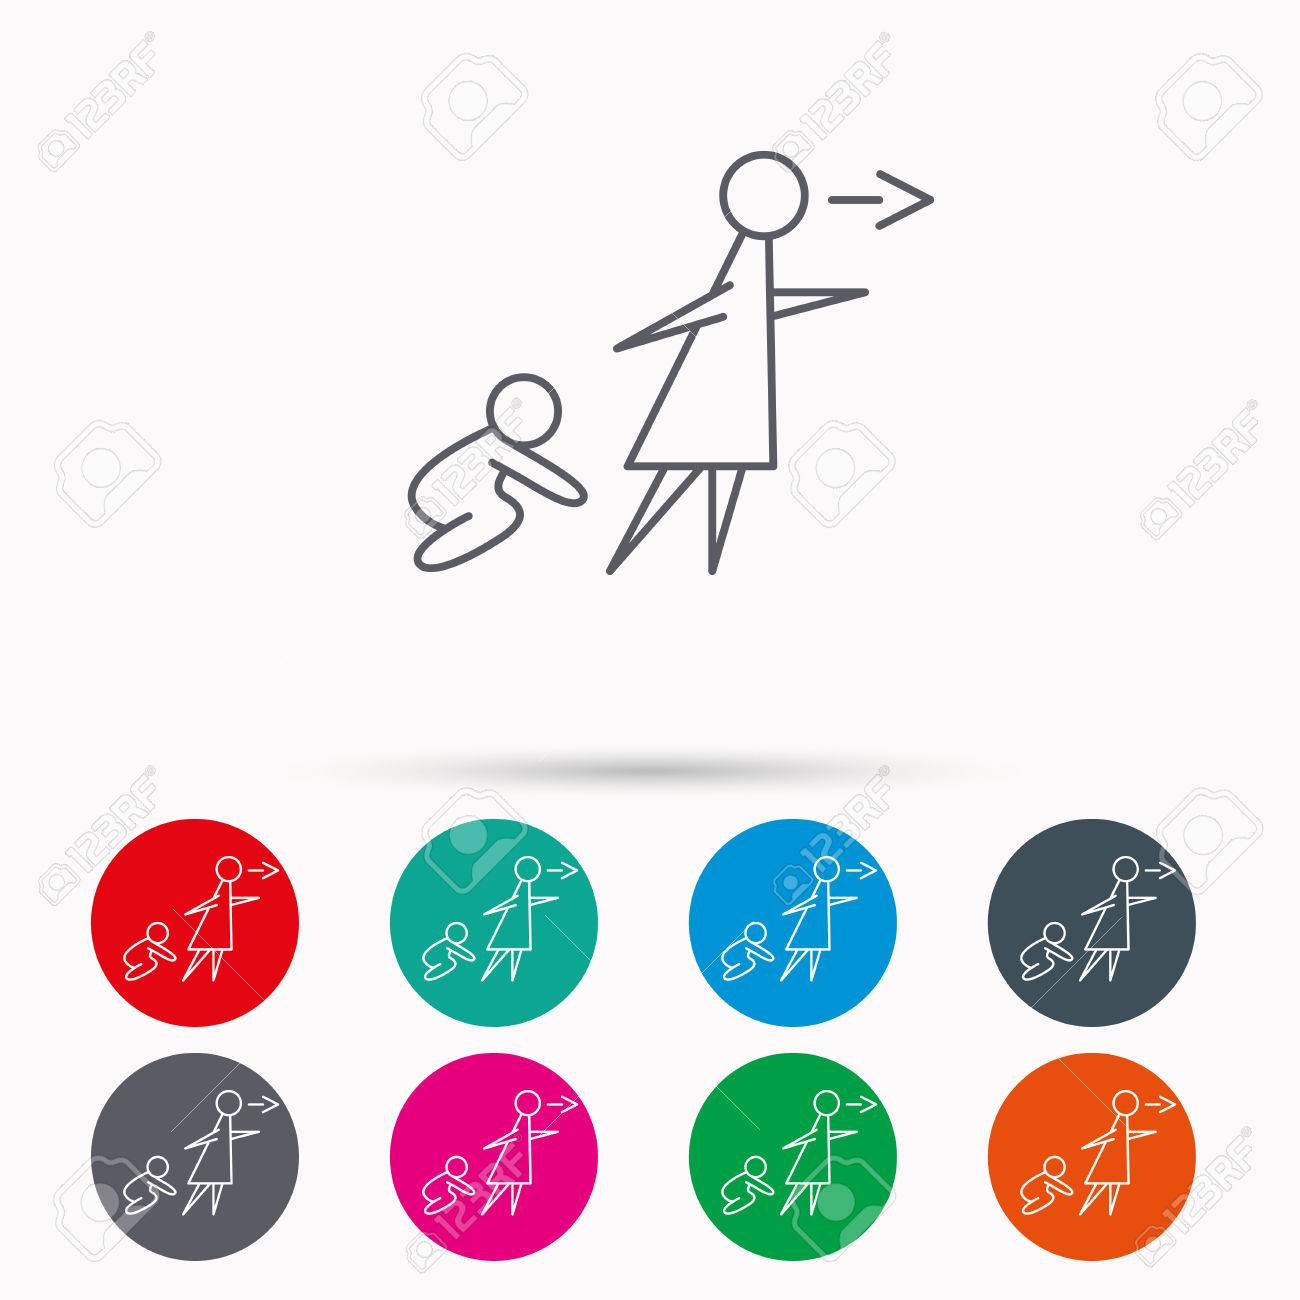 unattended baby icon babysitting care sign do not leave your babysitting care sign do not leave your child alone symbol